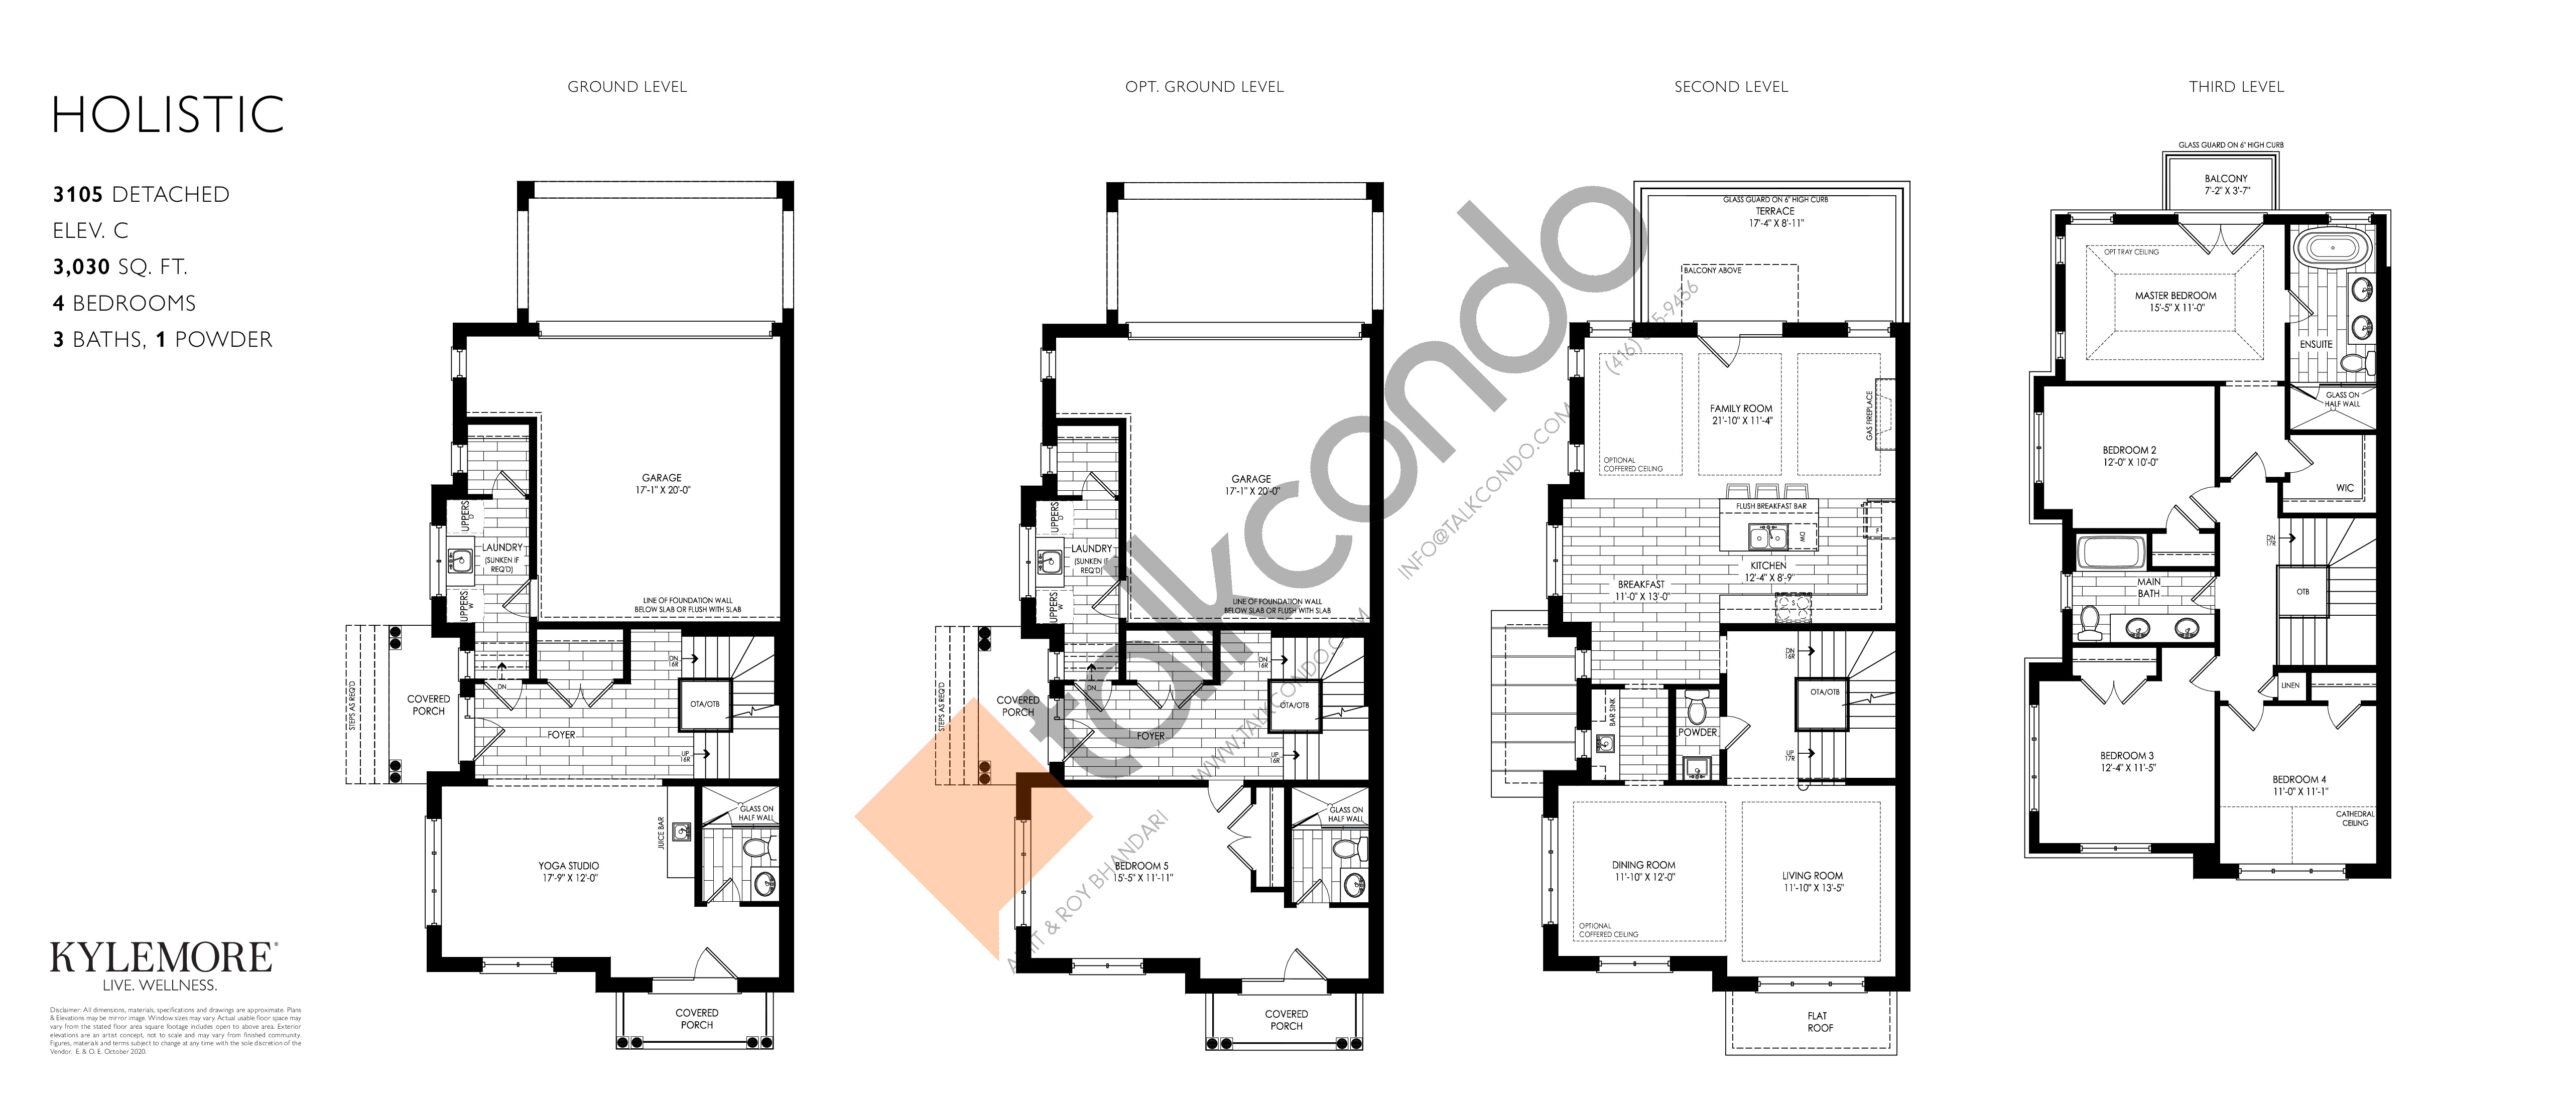 Holistic - Elev. C Floor Plan at Angus Glen South Village - 3030 sq.ft